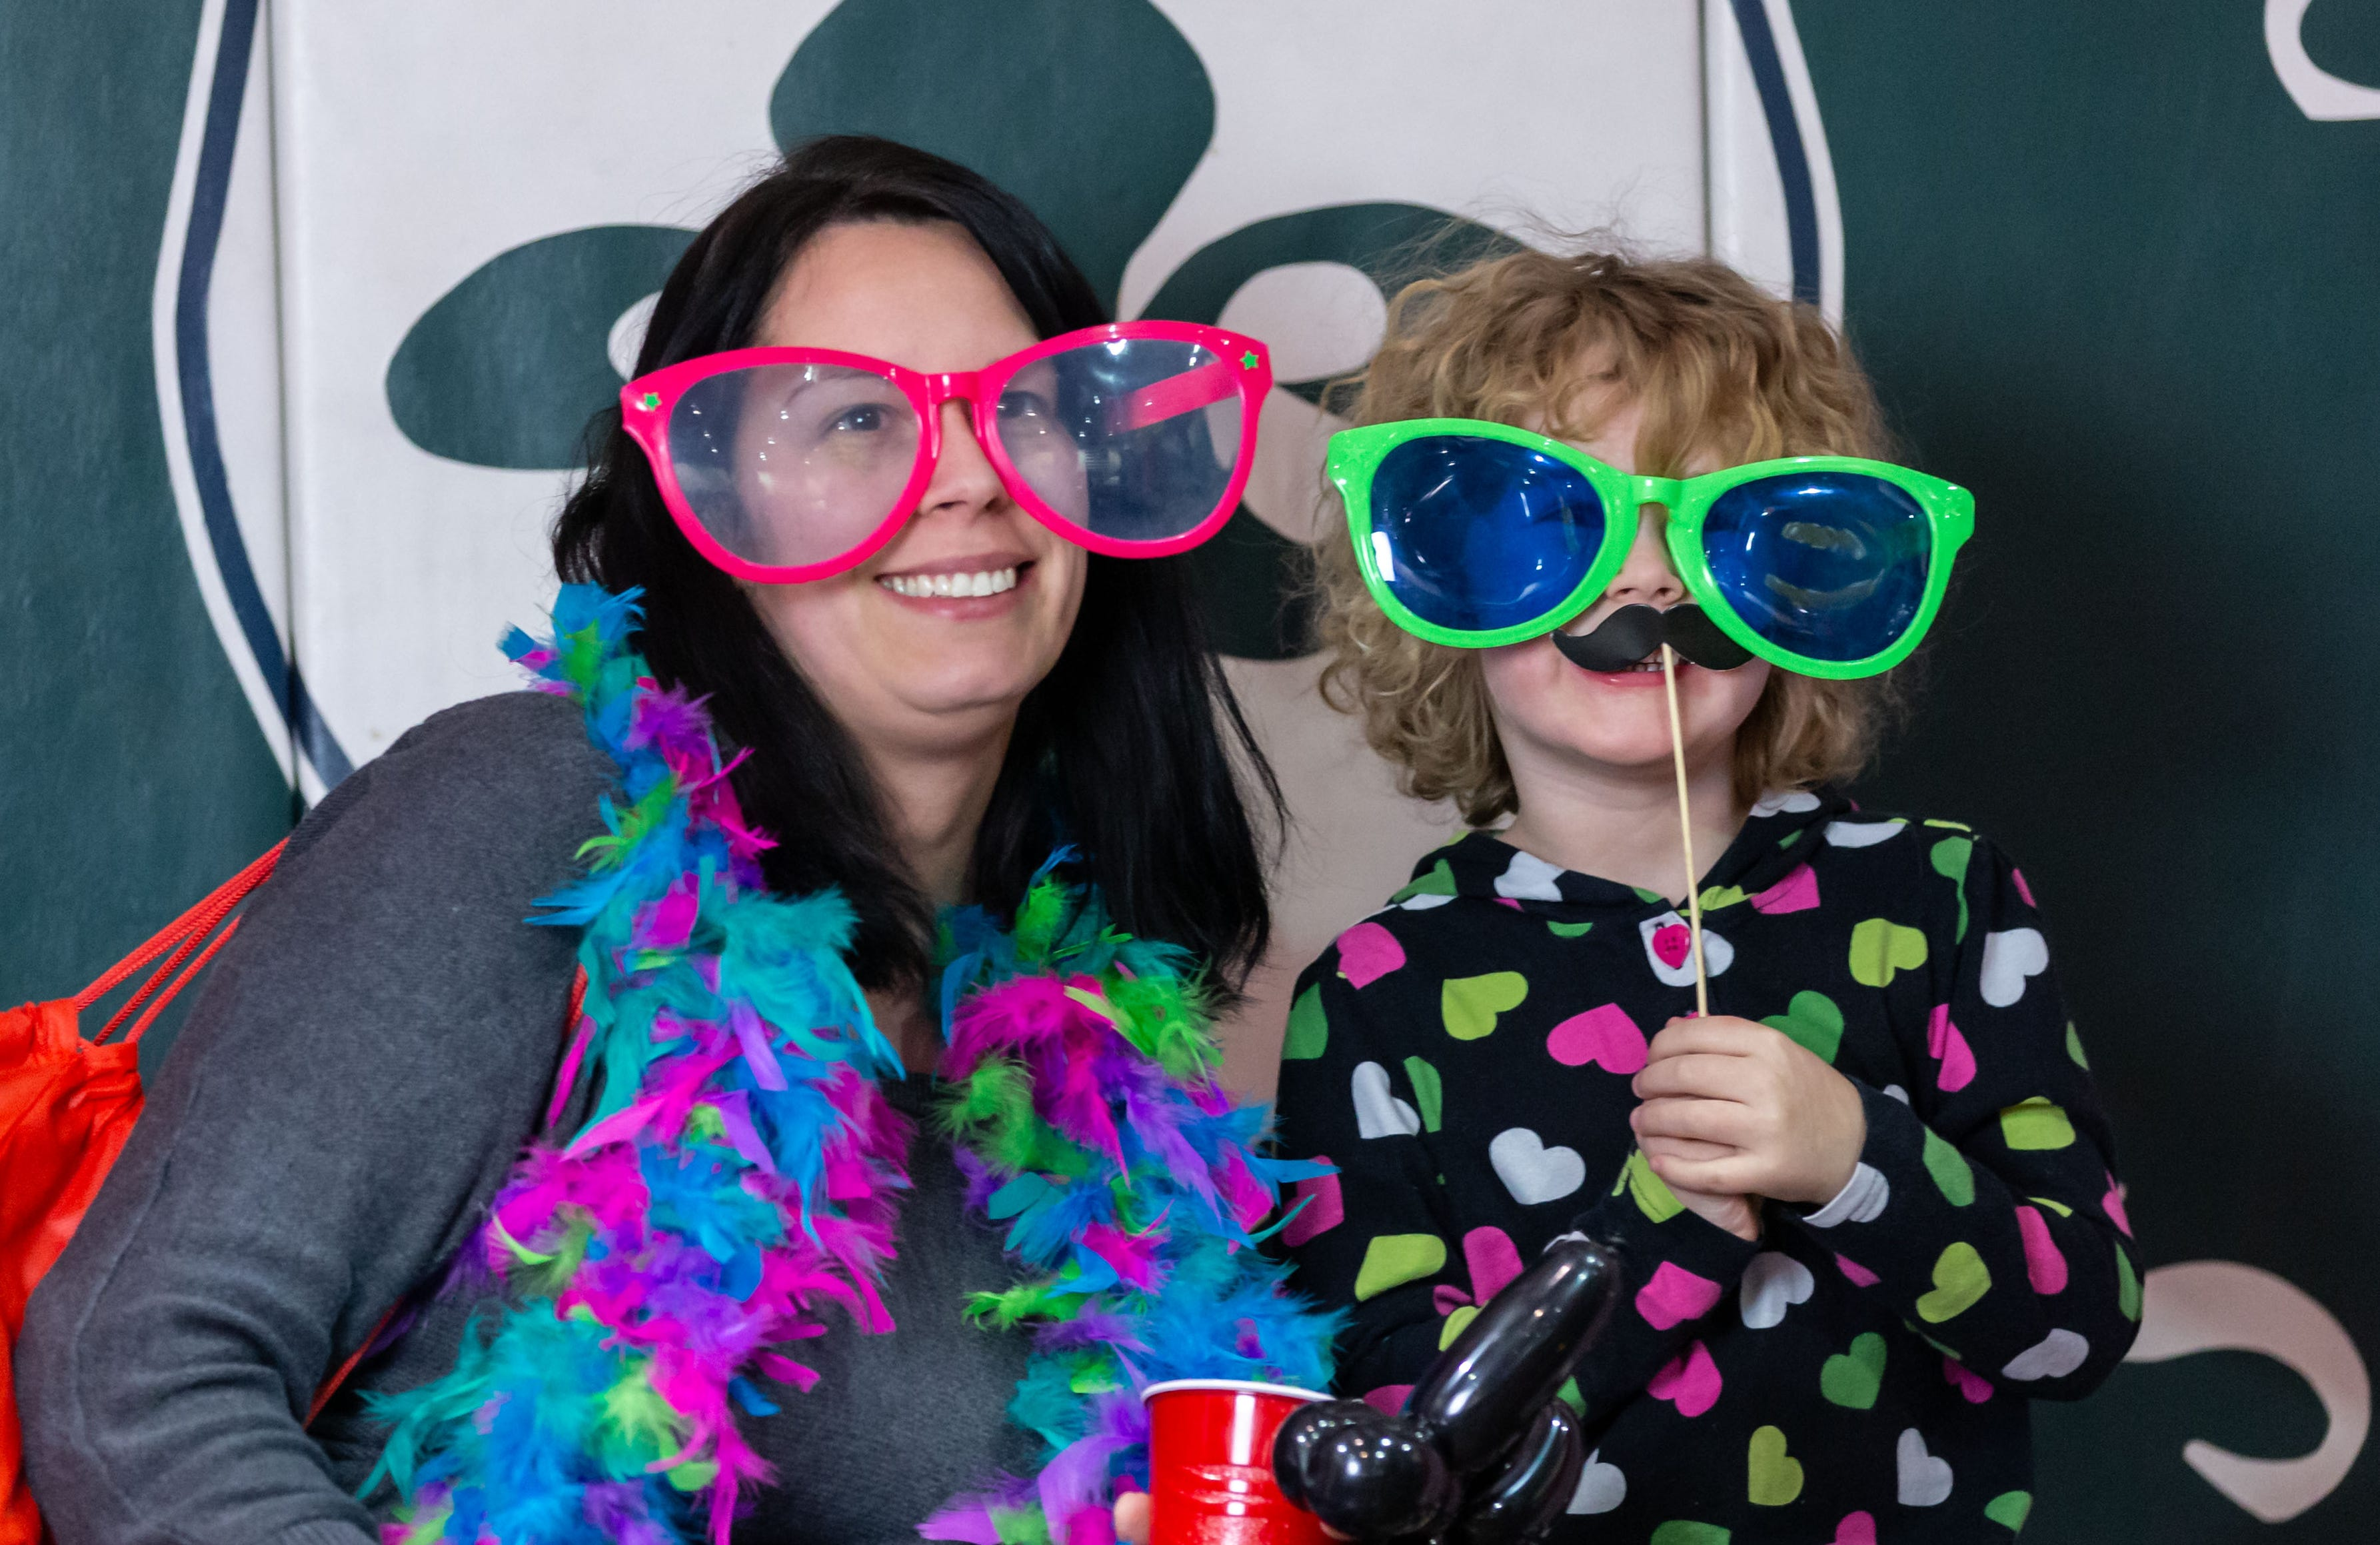 Sarah Paulson of Oconomowoc and her daughter Ava, 5, take a seat in the photo booth during the 9th annual St. Joan of Arc Carnival in Nashotah on Friday, Feb. 1, 2019. The family-friendly event features carnival games, food, face painting, balloon animals, a fortune teller and more.